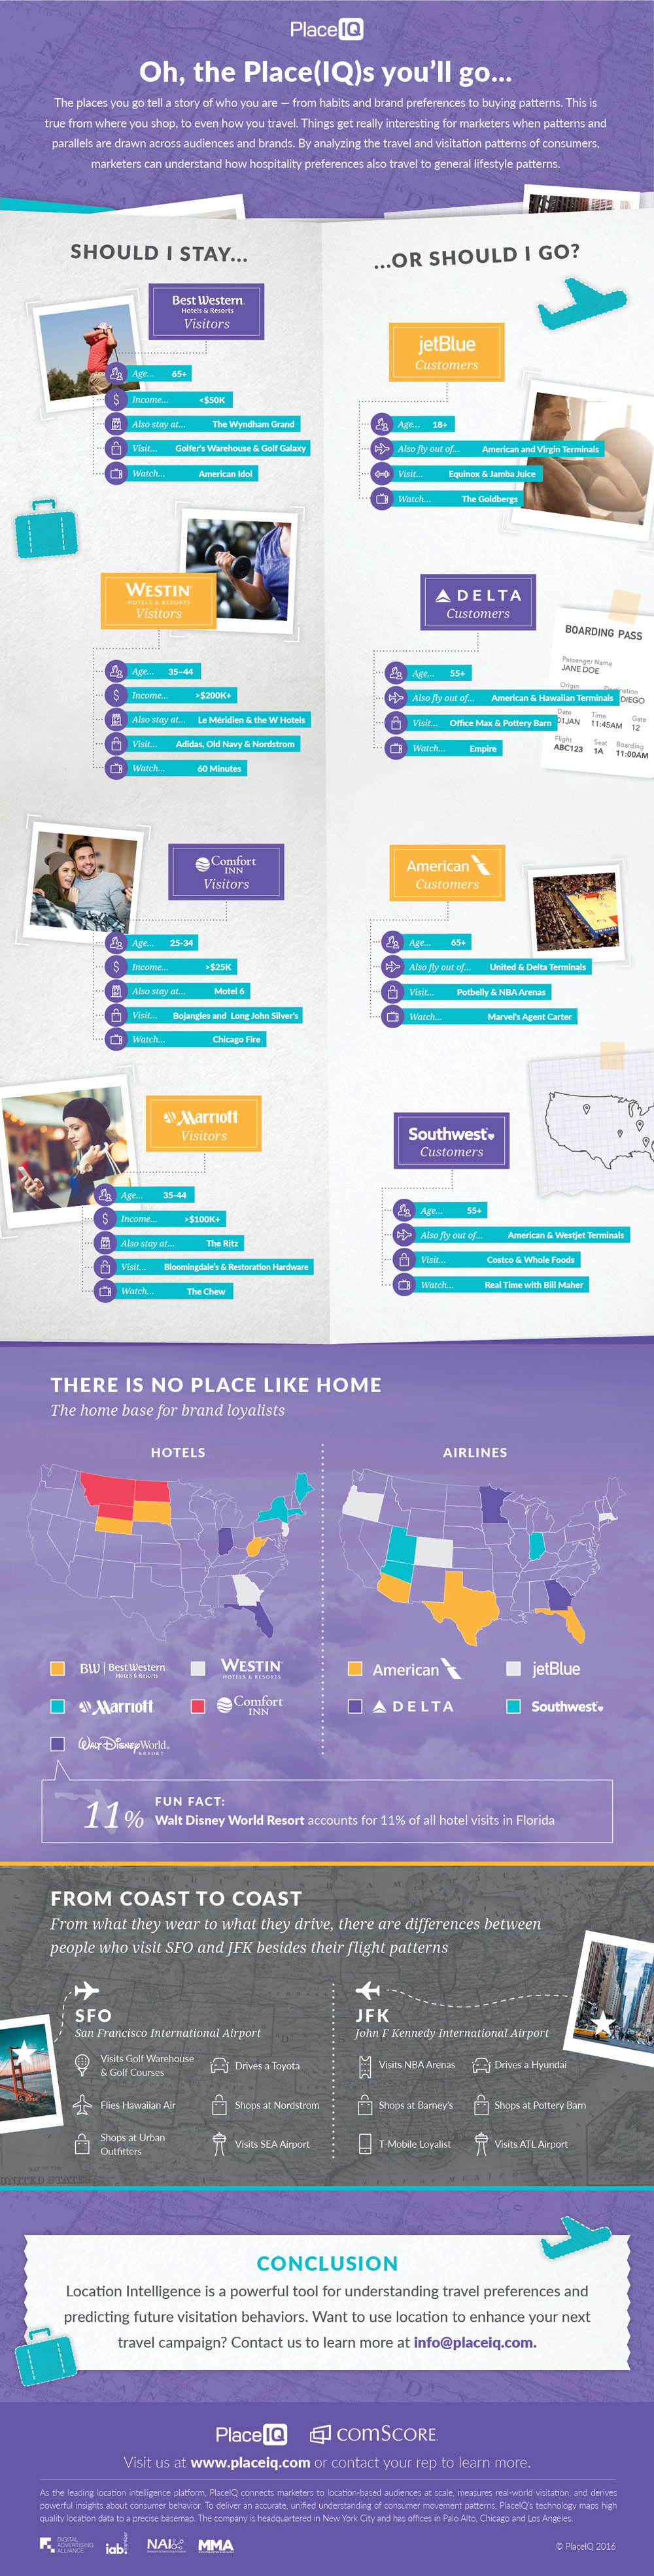 INFOGRAPHIC: Oh, the Places you'll go...